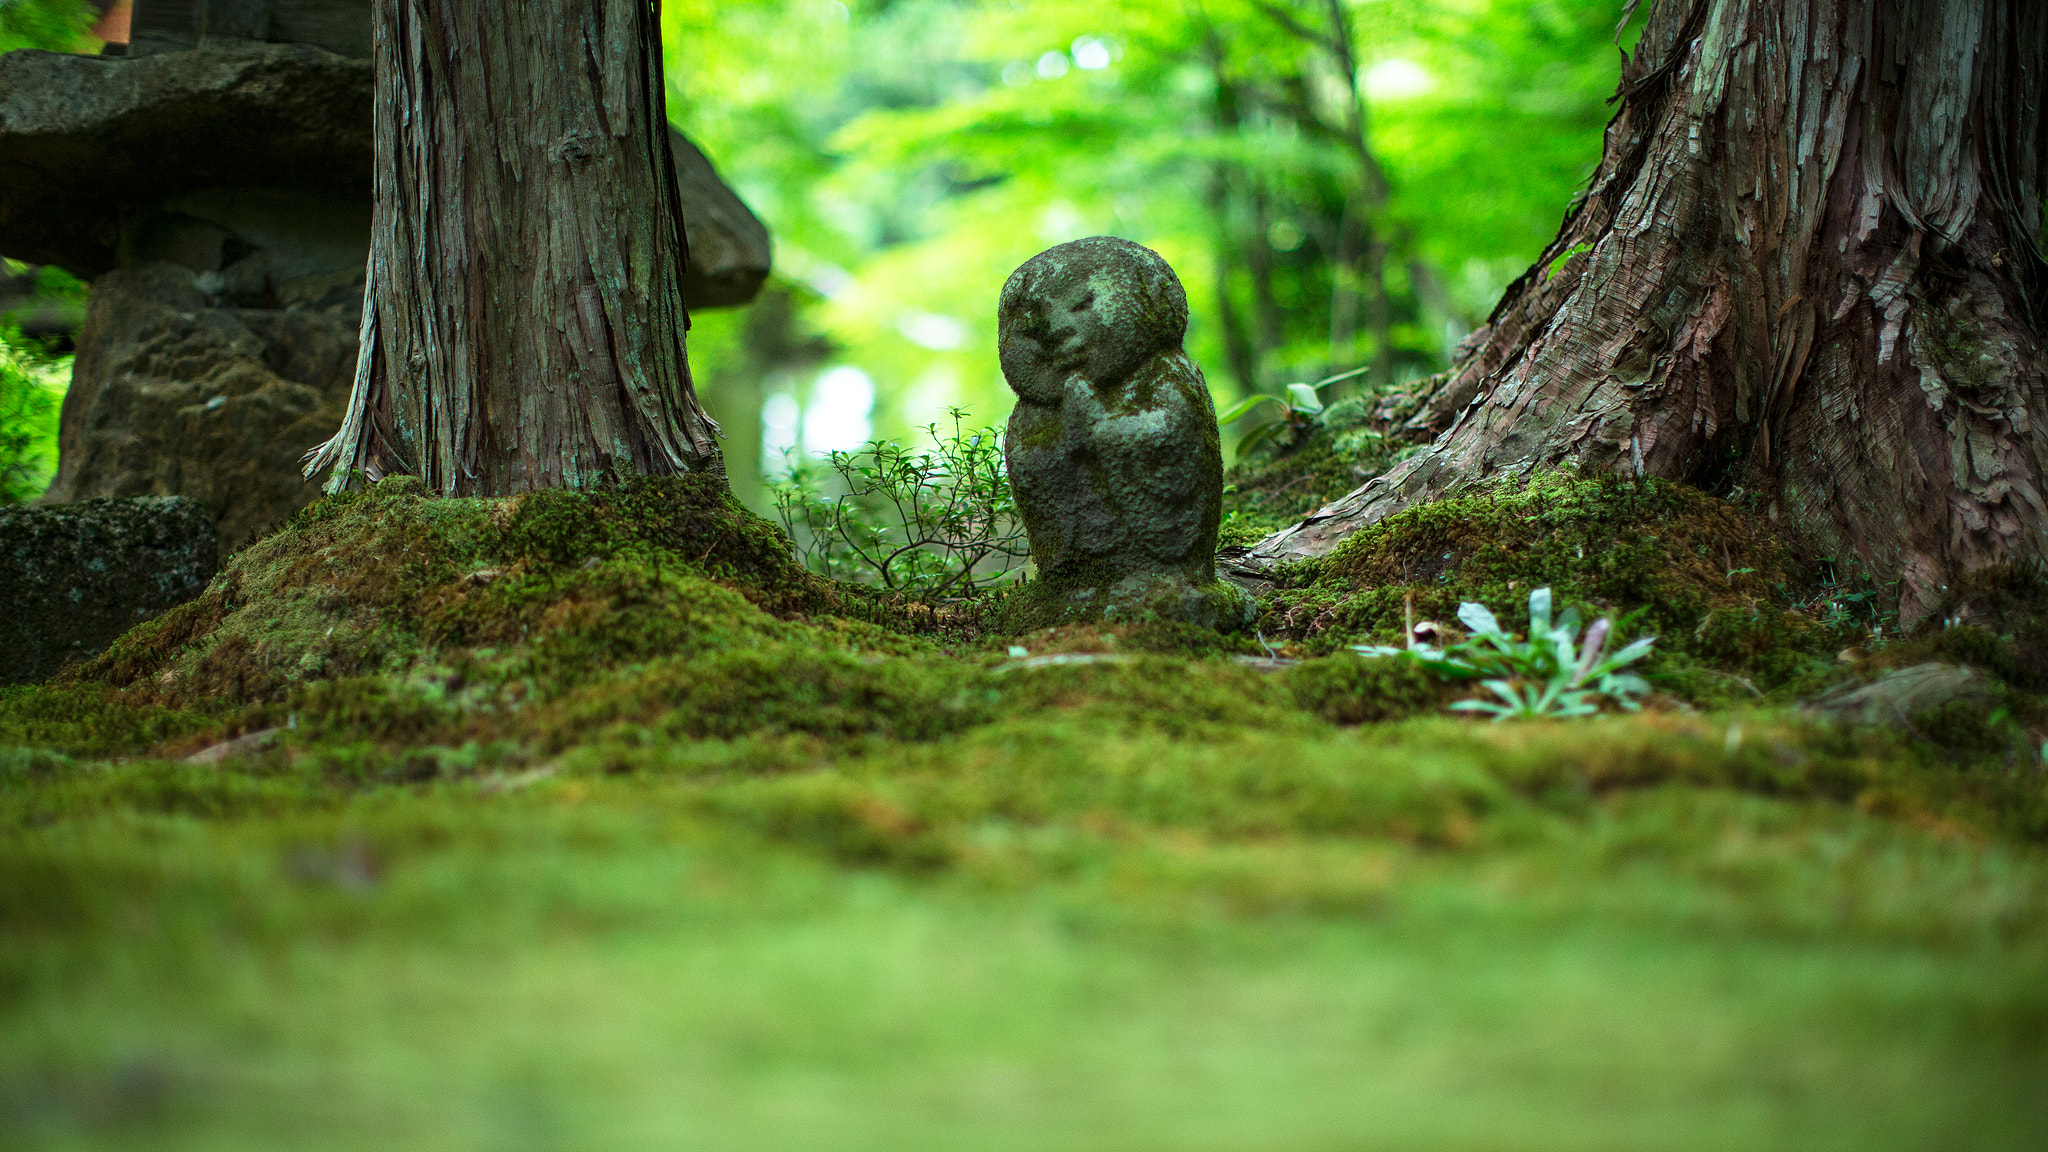 Photograph Forest Spirit by Tom Lowe on 500px